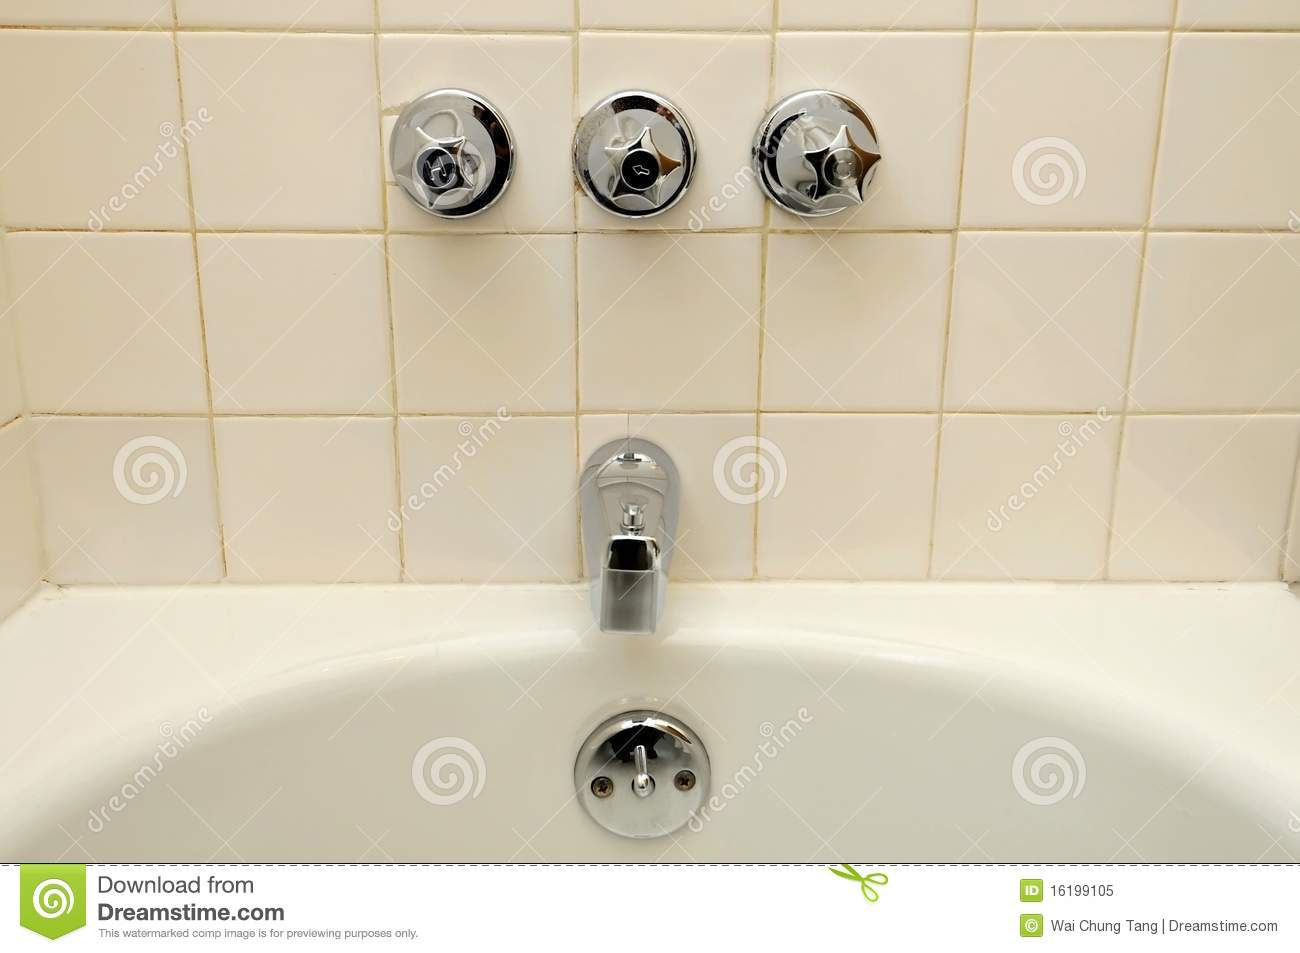 Front View Of Bathtub And Water Taps Stock Image - Image of design ...